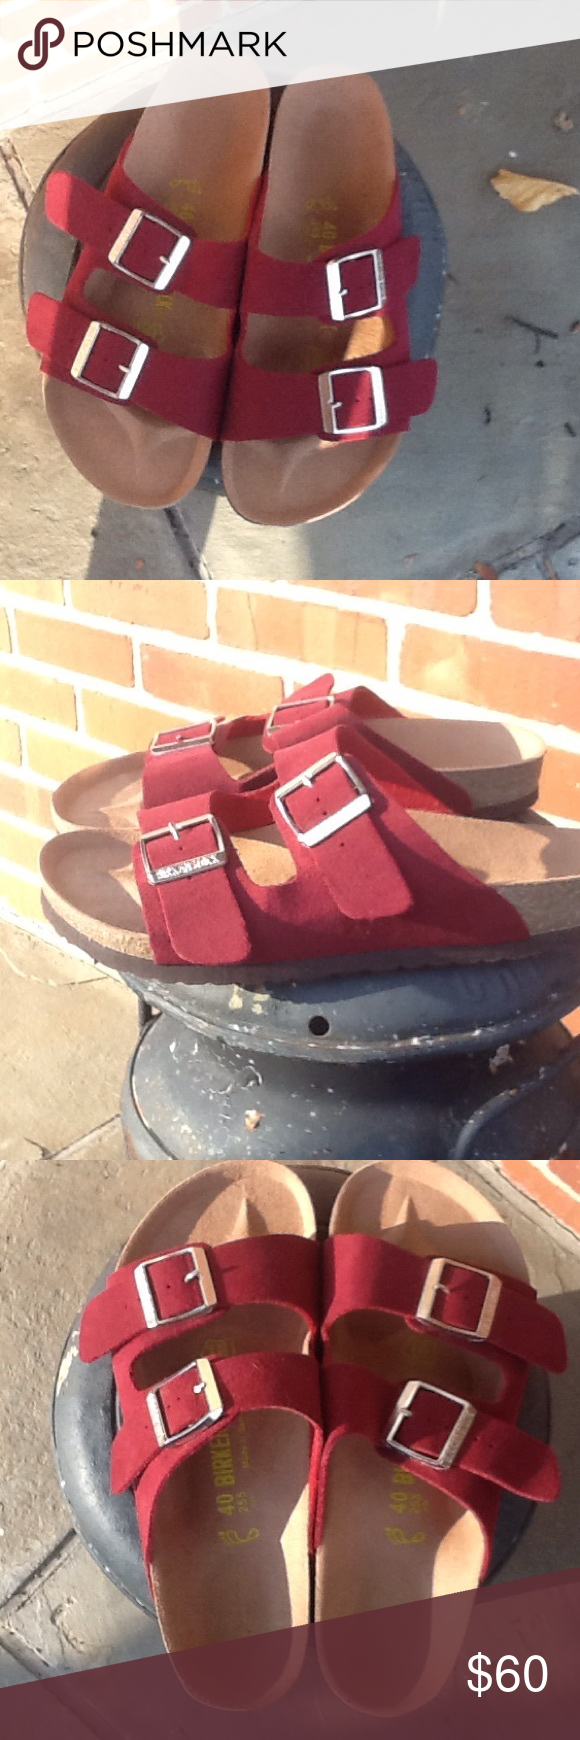 NWOT tag Berkinstocks Burgundy suede Never worn size 40 Birkenstock sandals Birkenstock Shoes Sandals